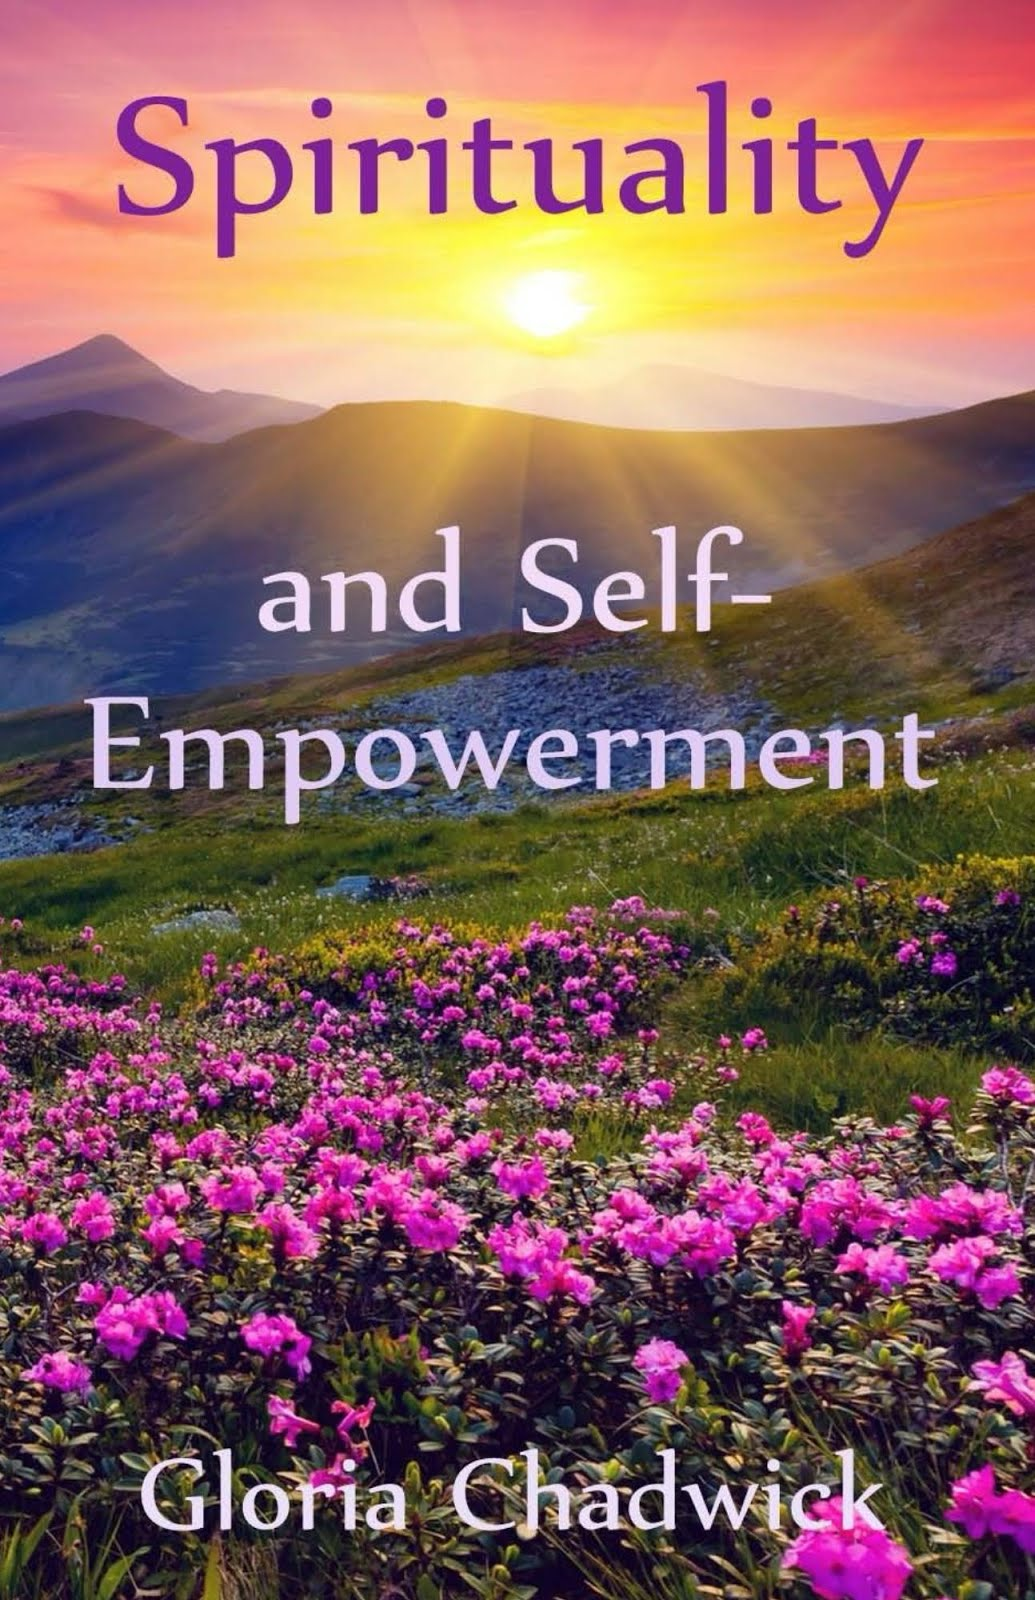 Spirituality and Self-Empowerment